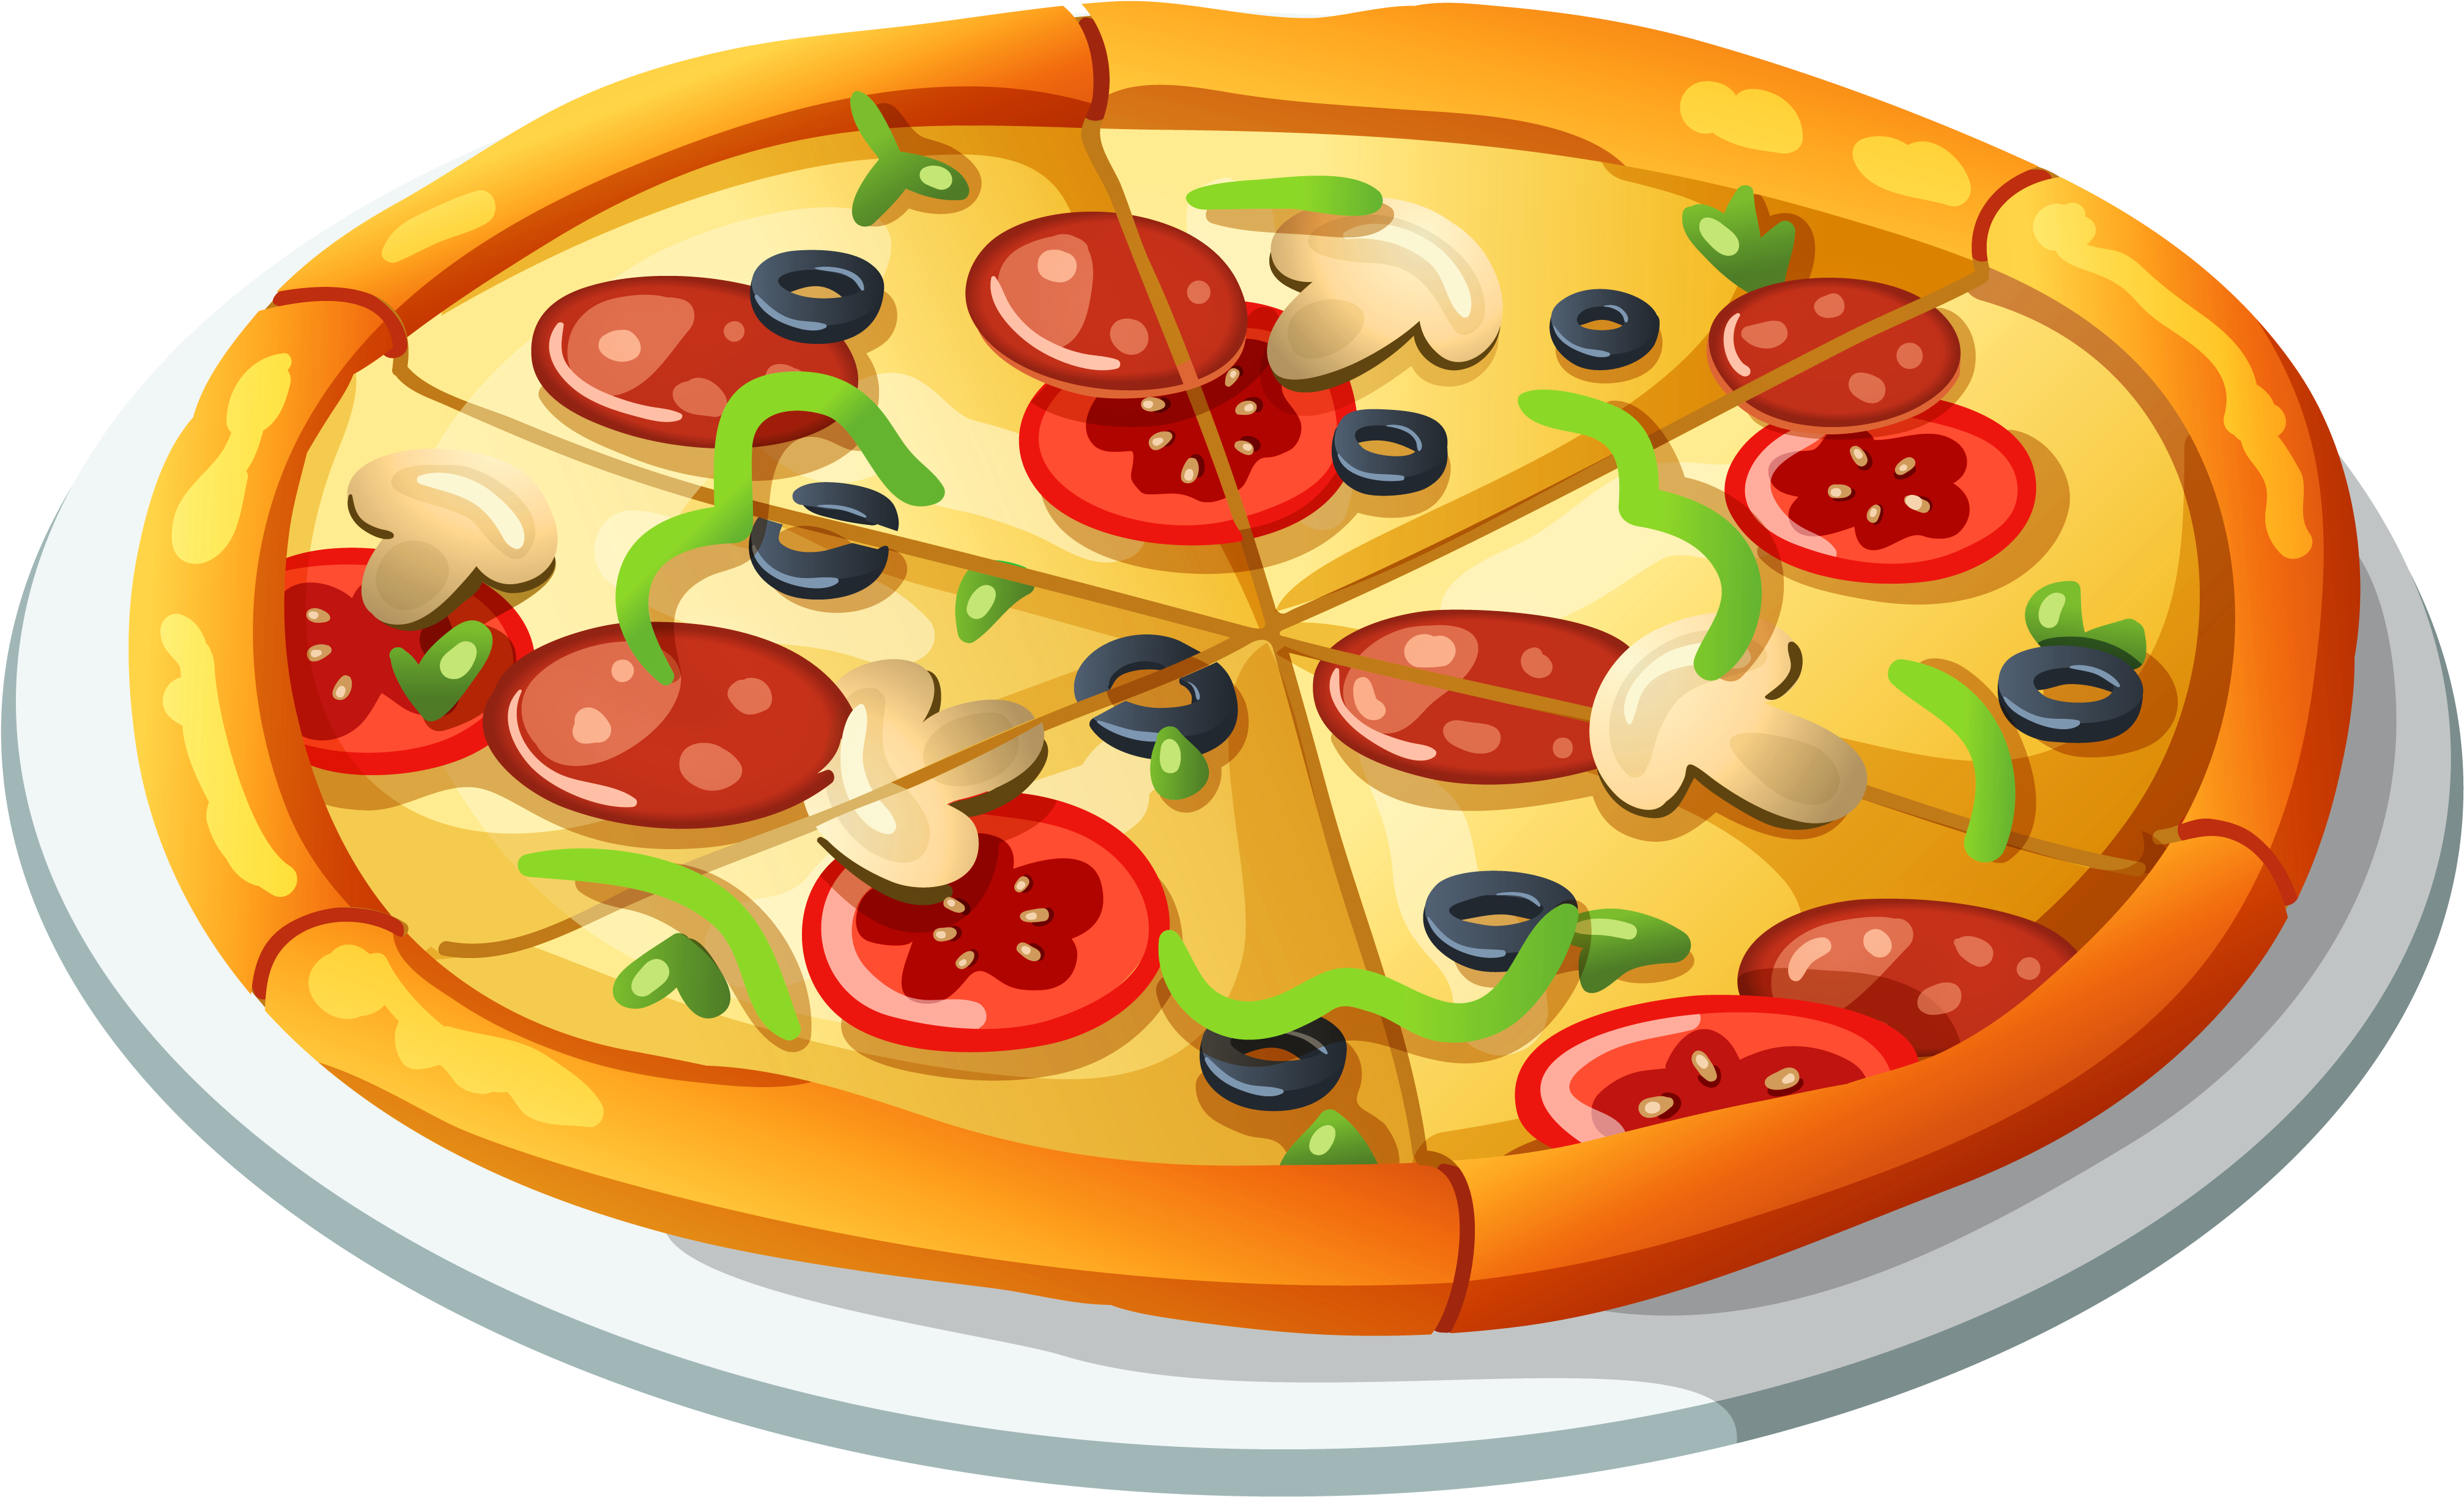 Transparent pizza clipart - Pizza Vector Clipart - Pizza Clipart